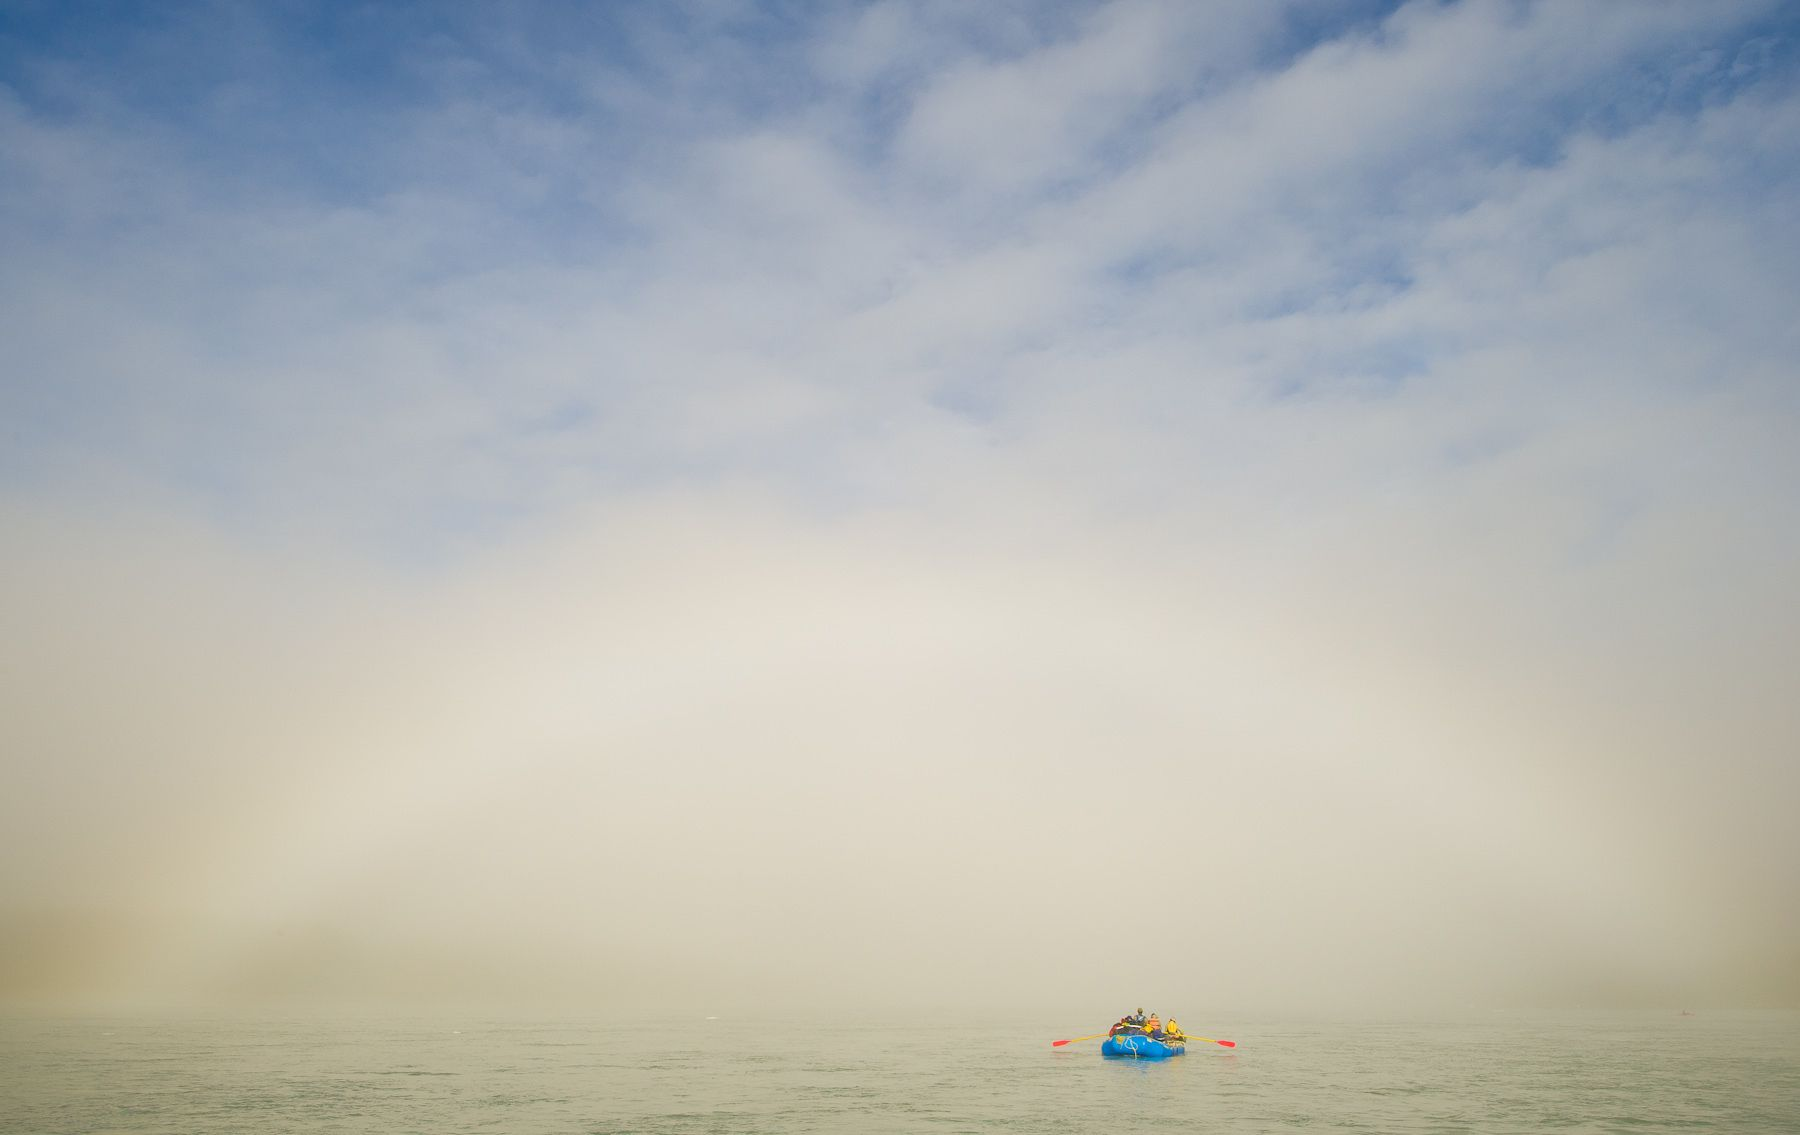 Rafting below Fogbow on Alsek River